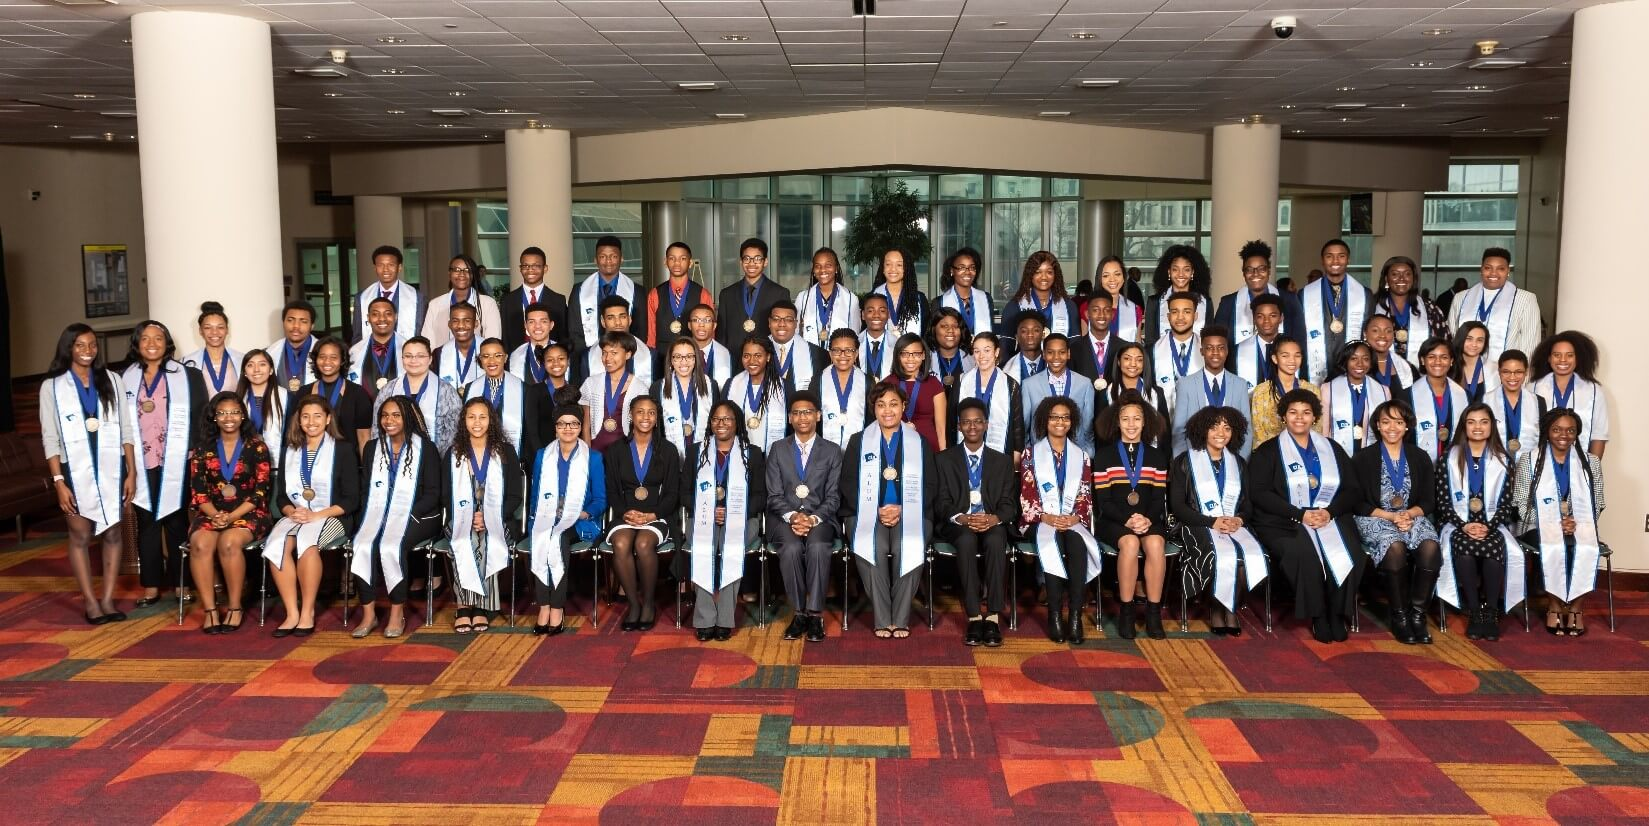 TOP MINORITY ACHIEVERS HONORED; $5.2 MILLION IN SCHOLARSHIPS AWARDED TO 71 YOUTH